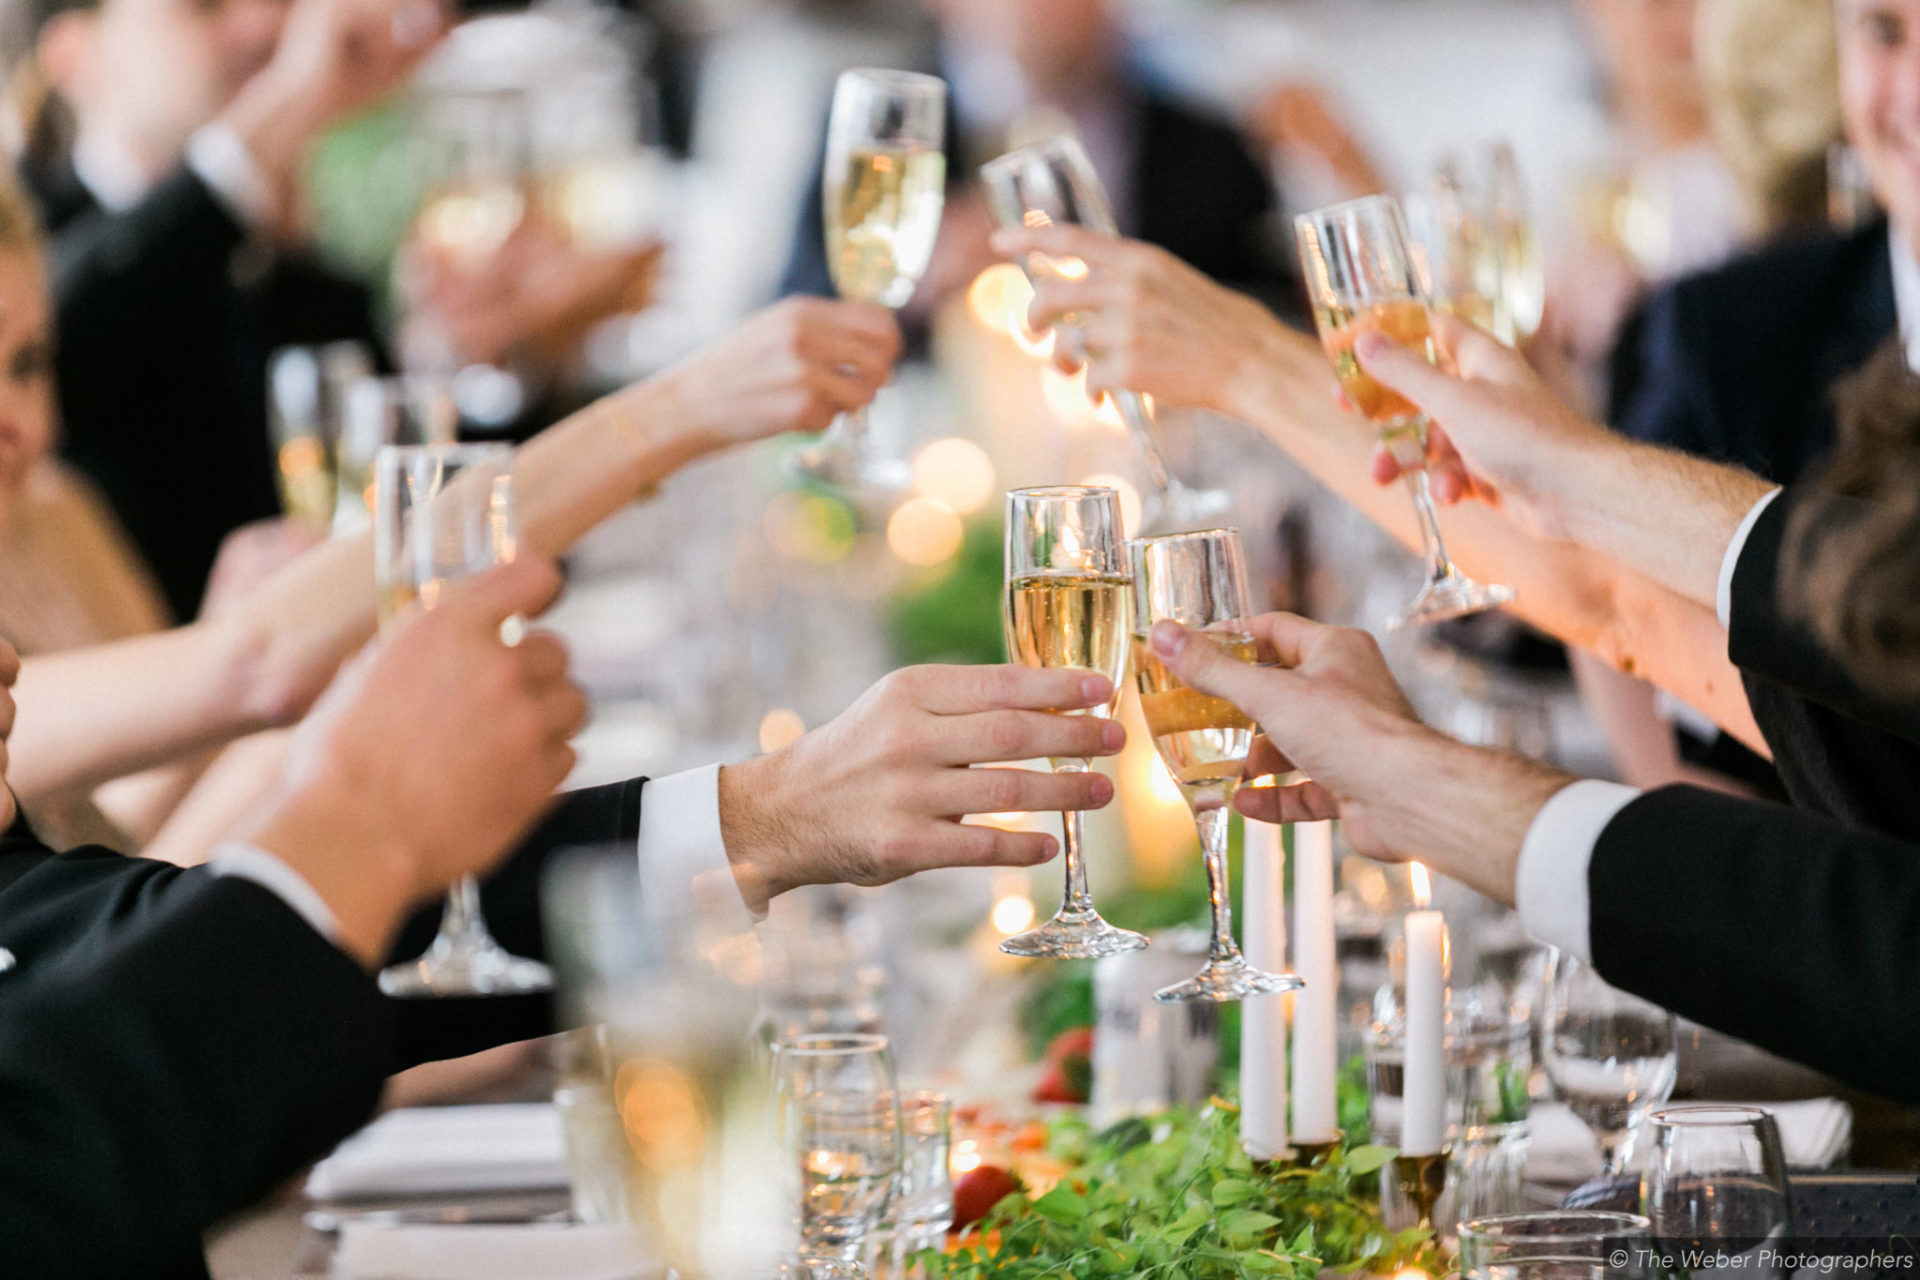 traverse city area wedding toast at aurora cellars vineyard